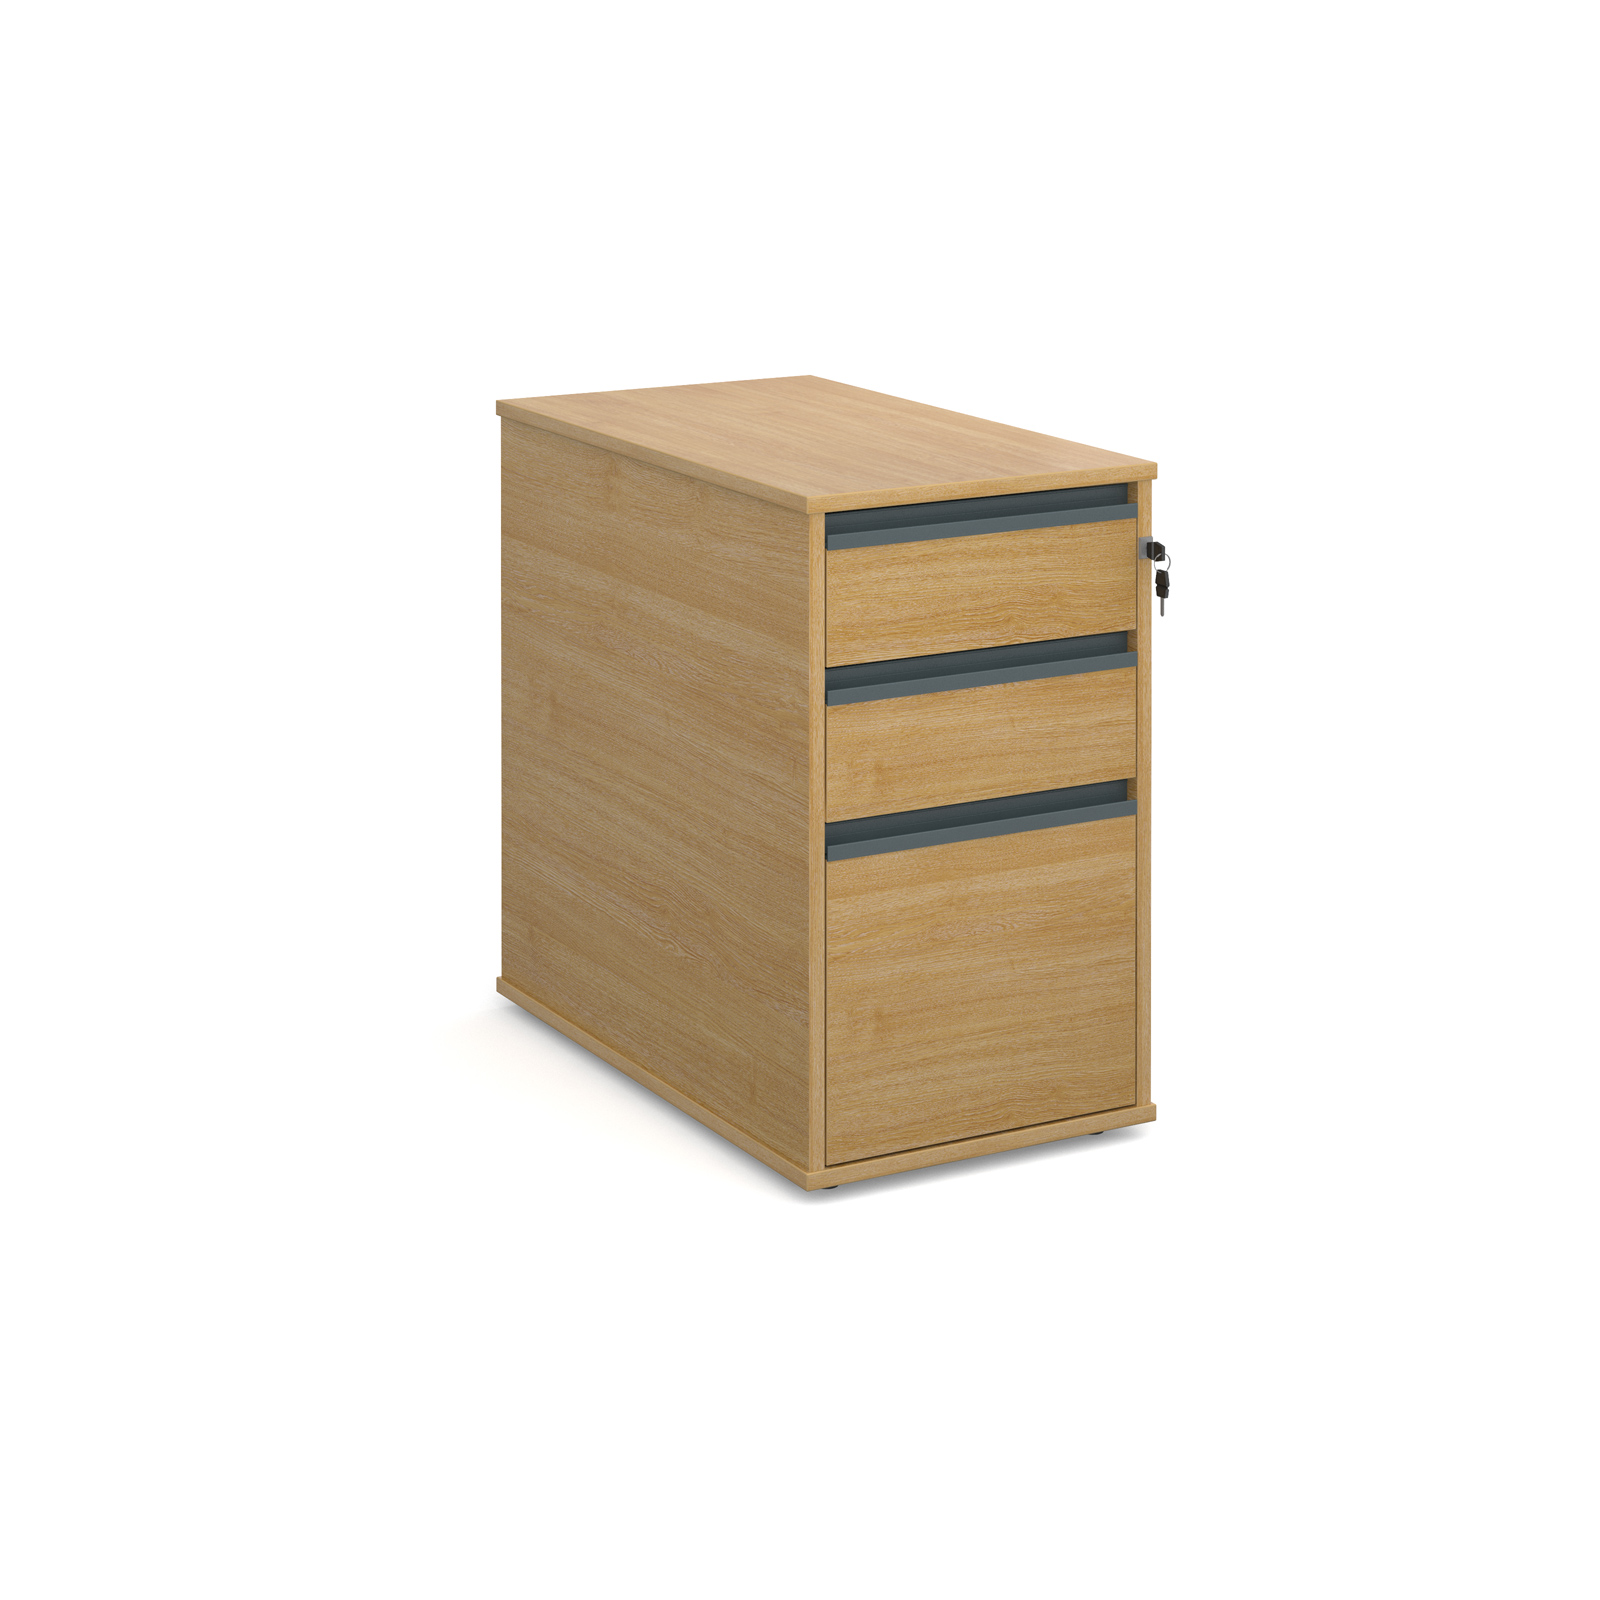 3 Drw Desk End Ped 746mm - Oak